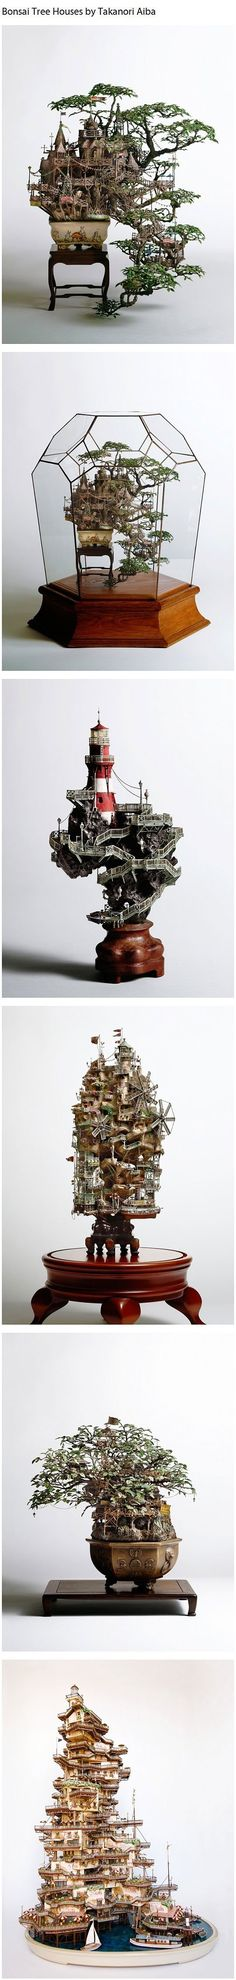 Bonsai Tree Houses - Takanori Aiba